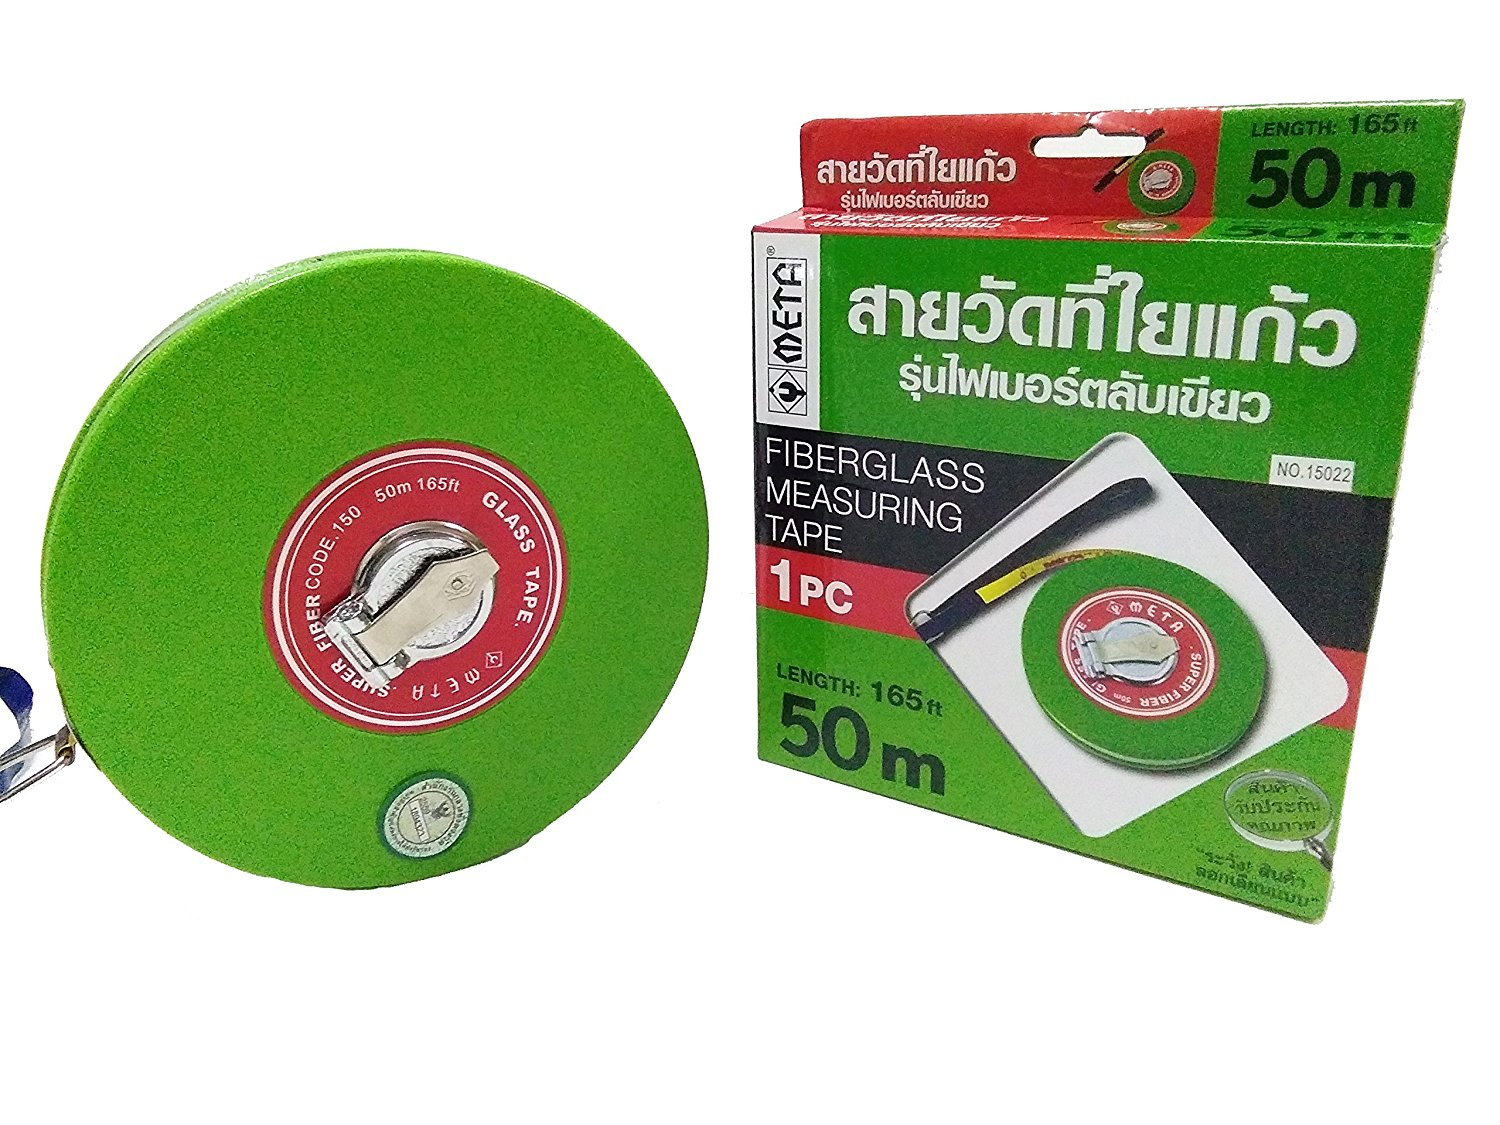 Prasertsteel META - 20 Meters Executive Diameter Pocket Tape ( Green ).